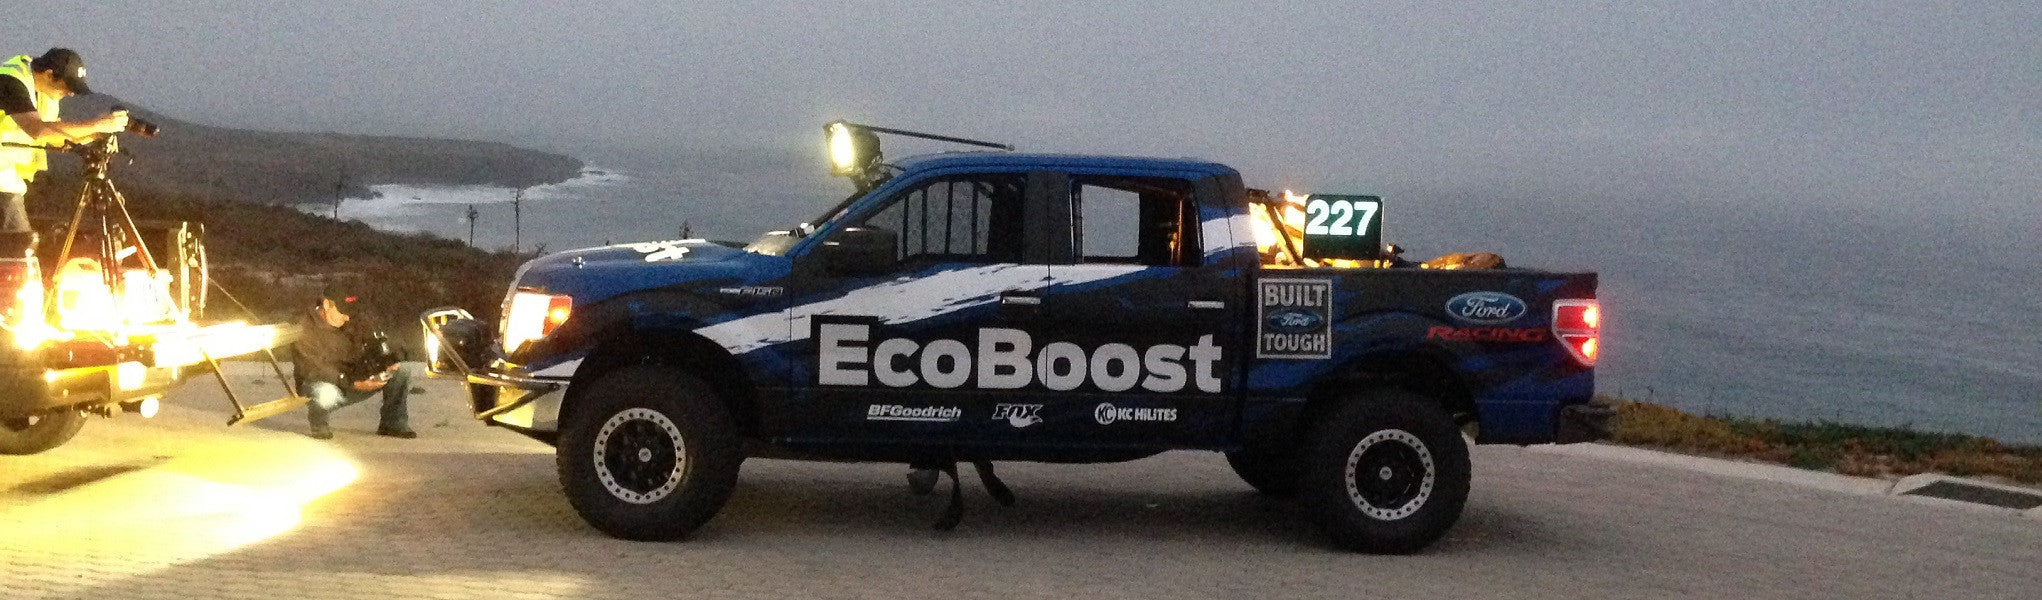 Ford Ecoboost off-road race truck